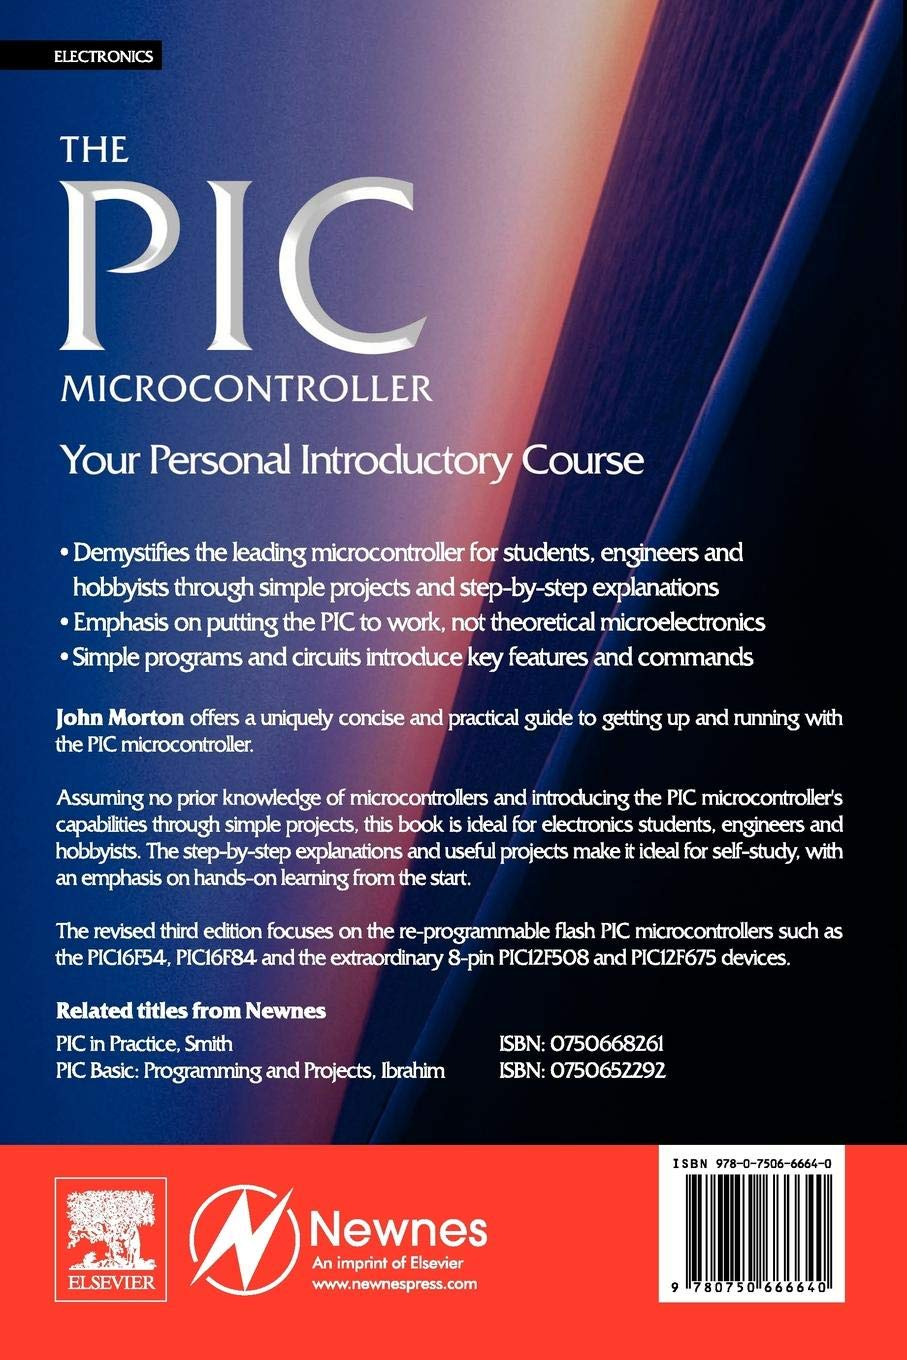 Buy The PIC Microcontroller: Your Personal Introductory